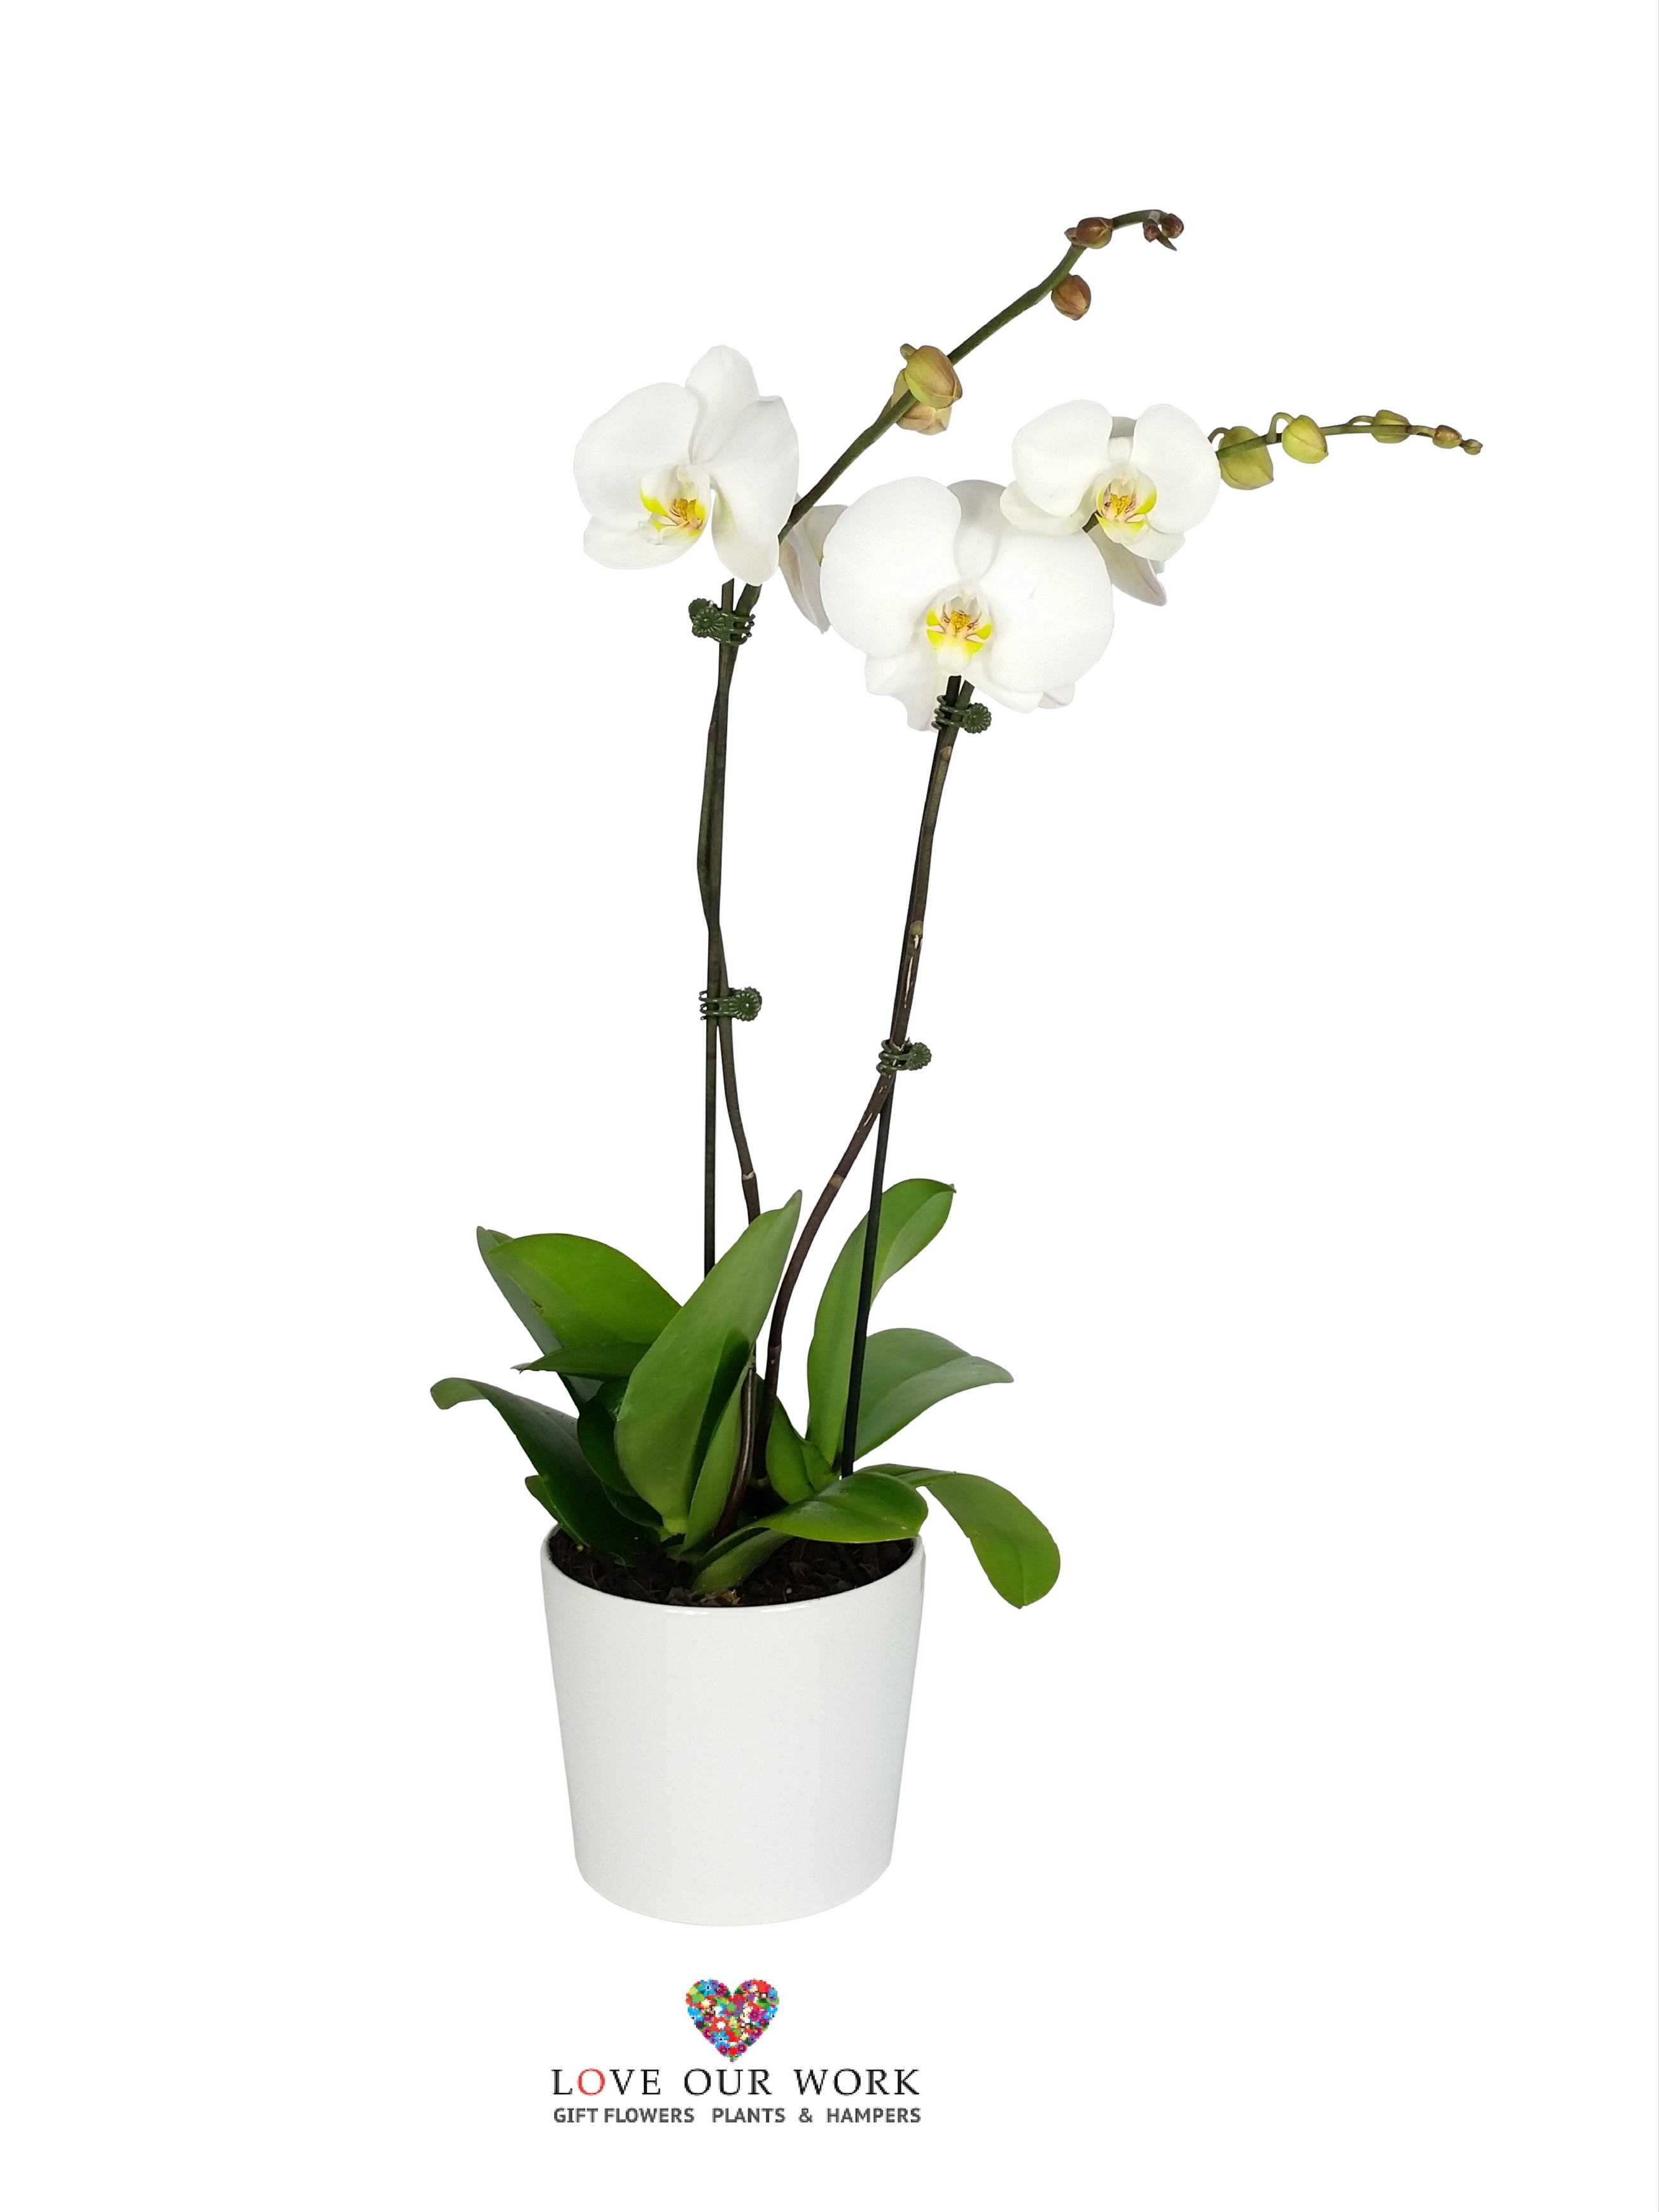 Pure. White. Bliss. Double spiked Phalaenopsis orchids make a perfect centerpiece